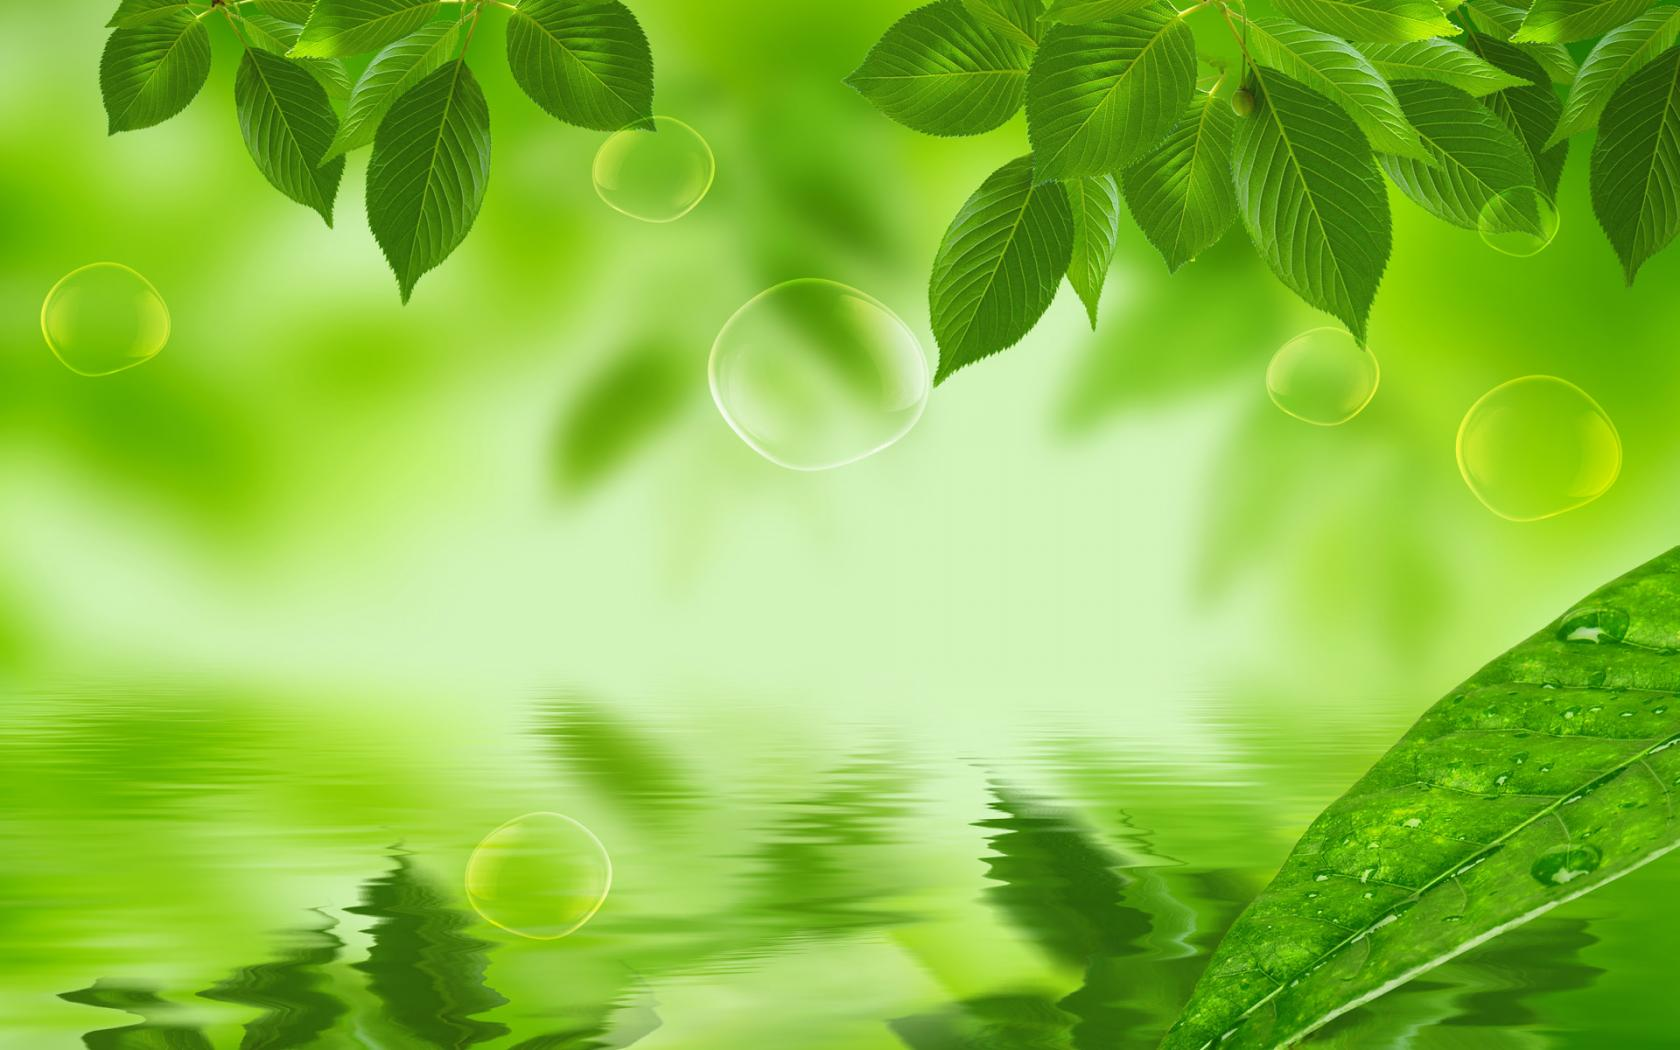 Natural Leaf Wallpaper